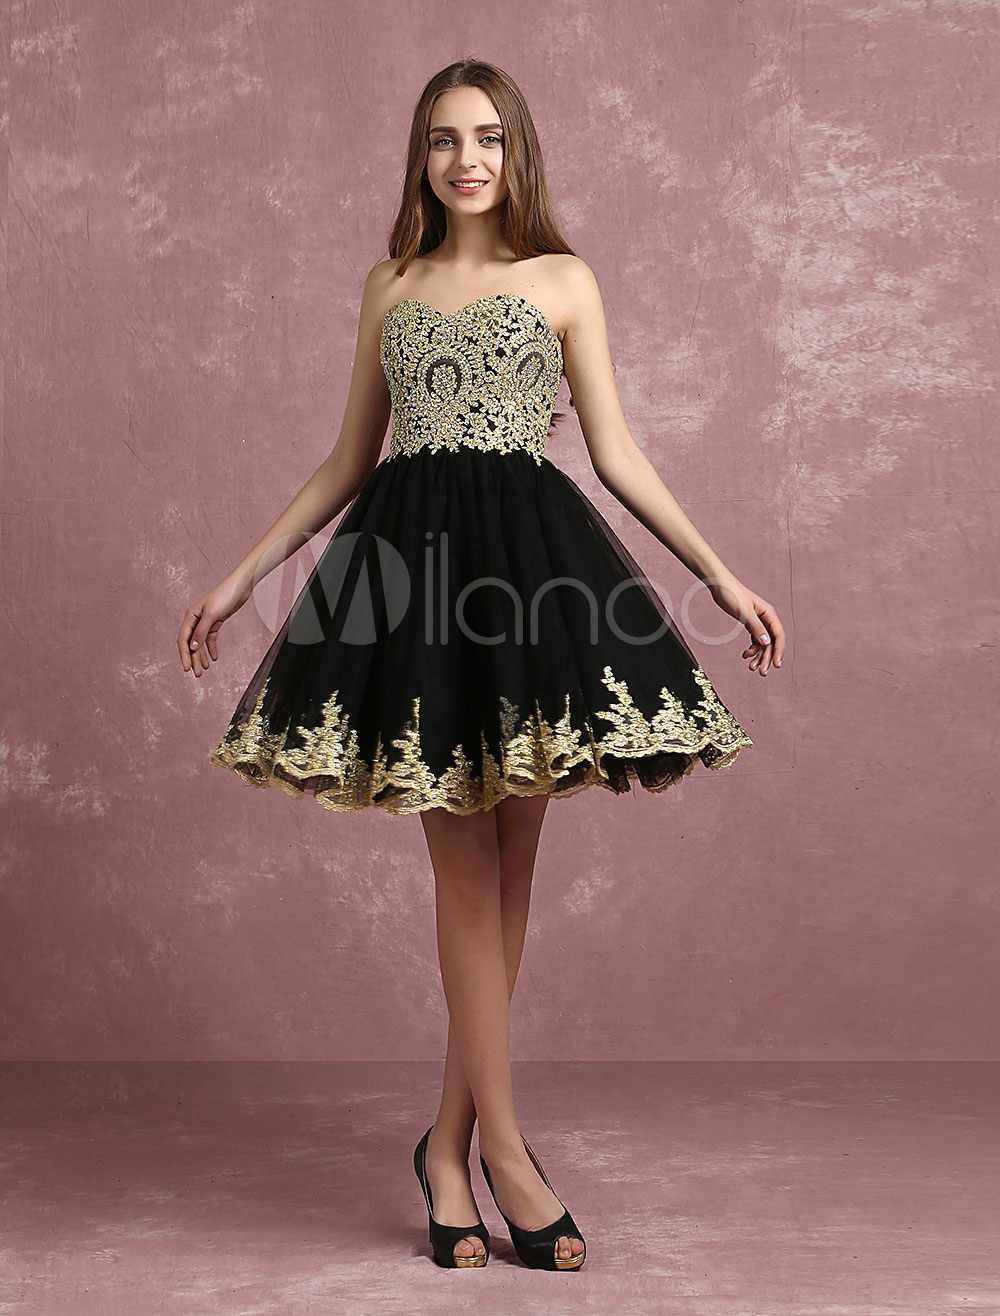 Tulle Cocktail Dress Strapless Sweetheart Beaded Homecoming Dress Black Sleeveless A Line Short Party Dress